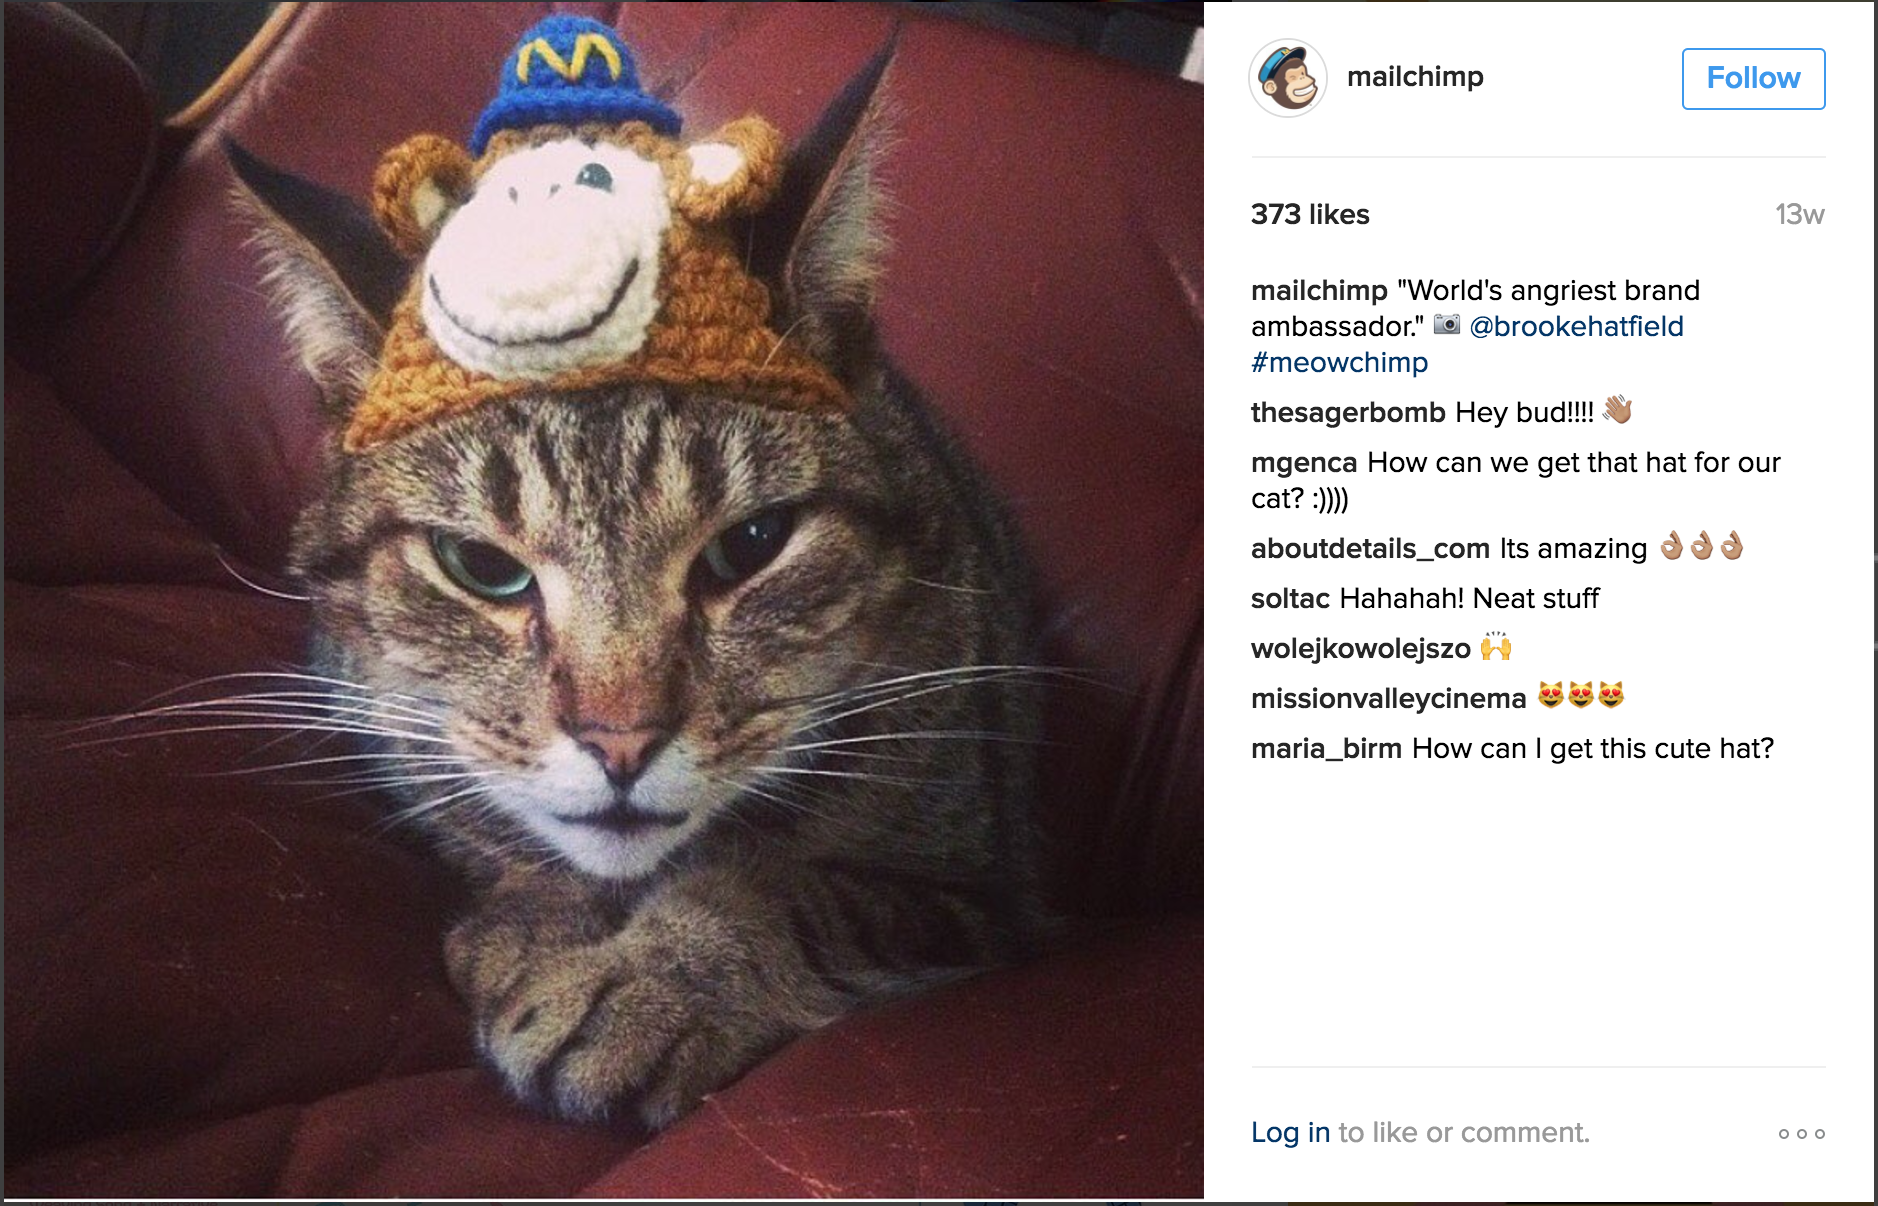 B2B social media, MailChimp on Instagram